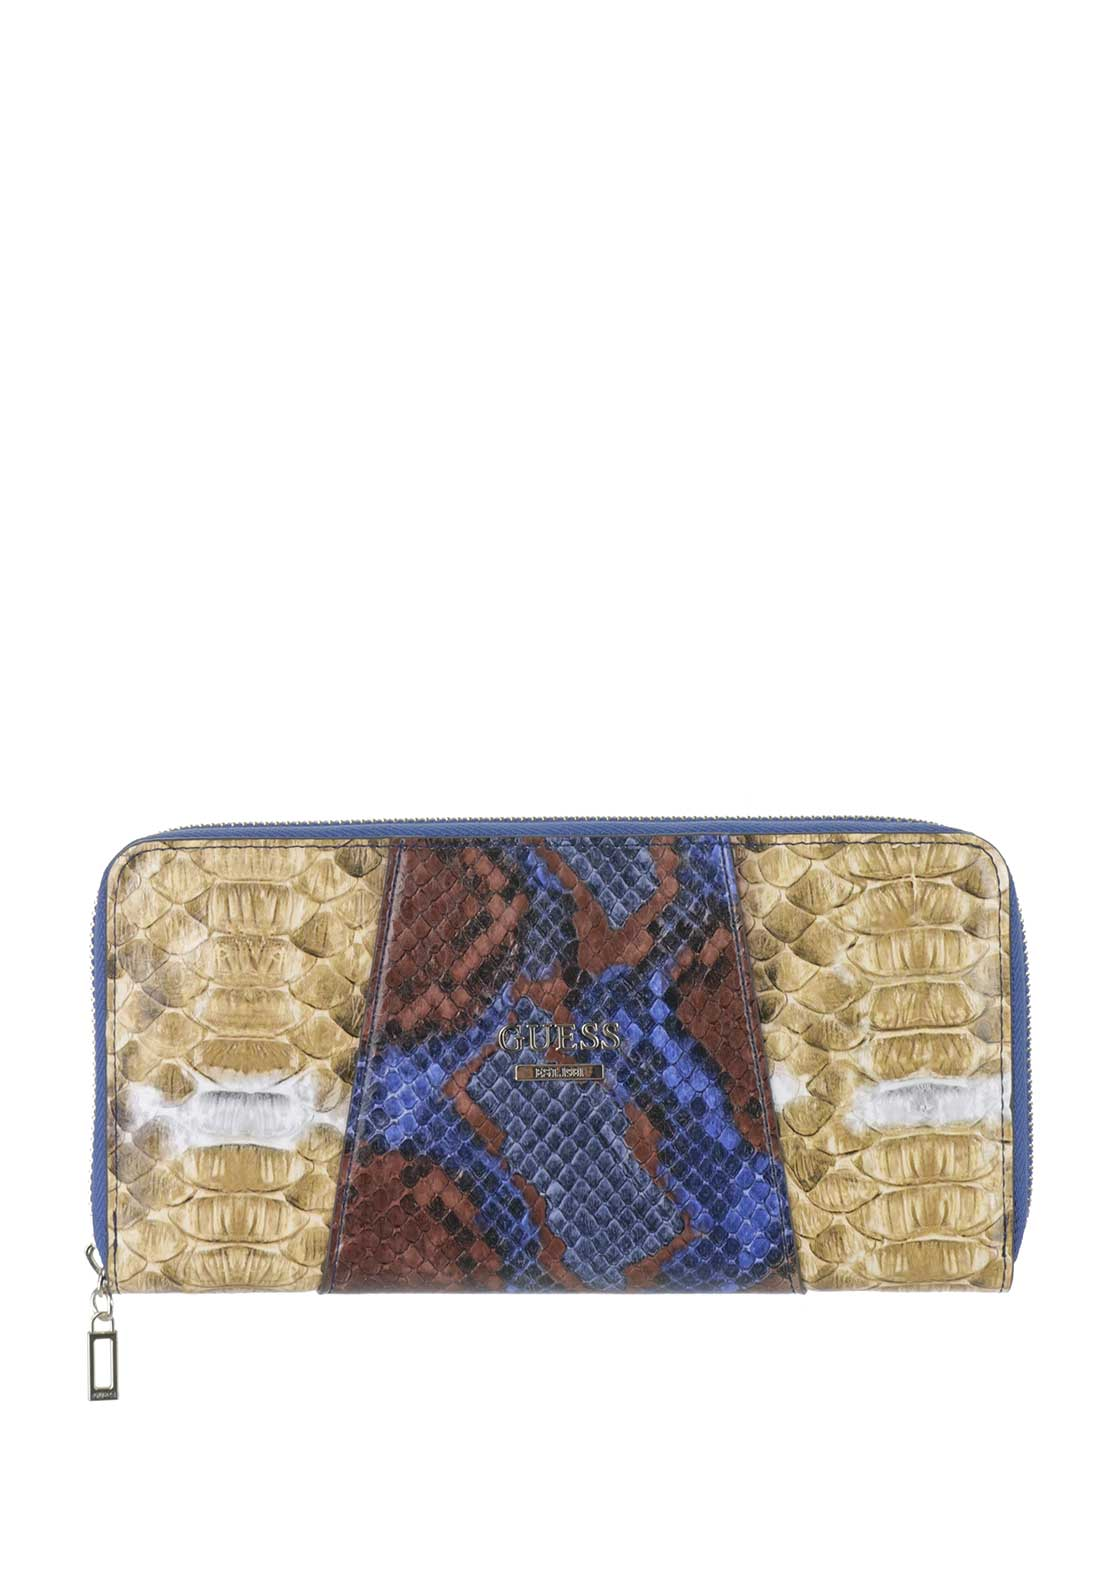 Guess Gia SLG Zip Around Purse, Python